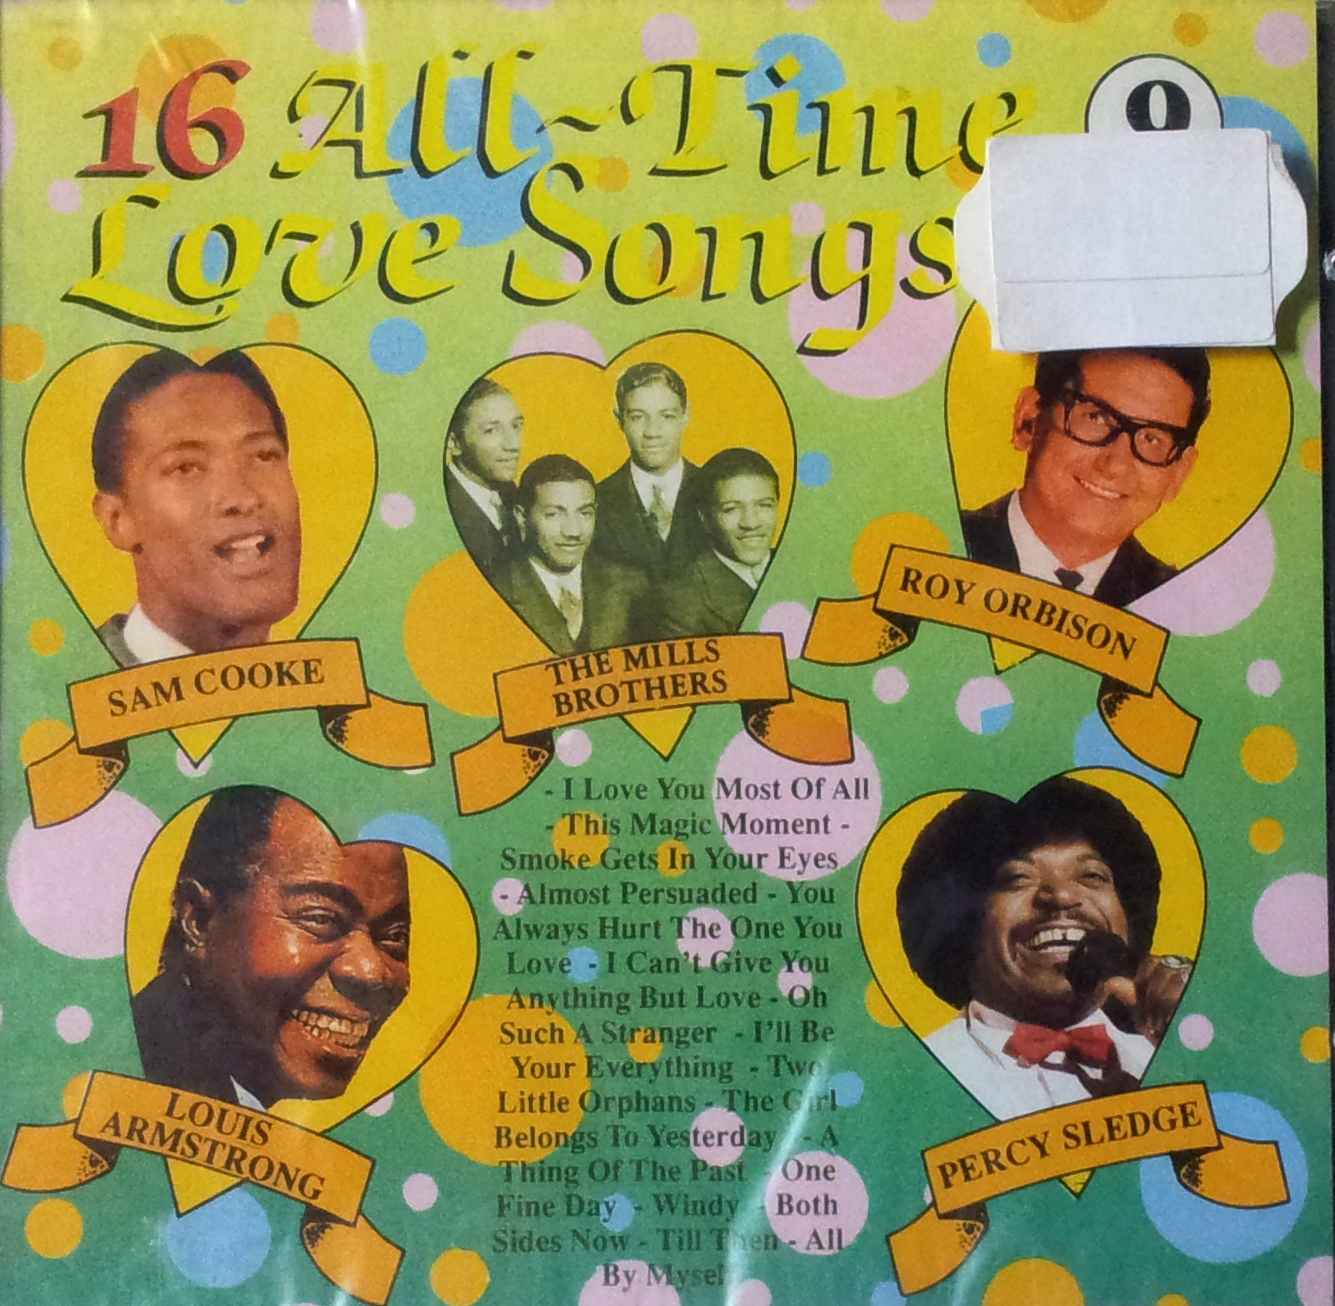 16 All time love songs - 9